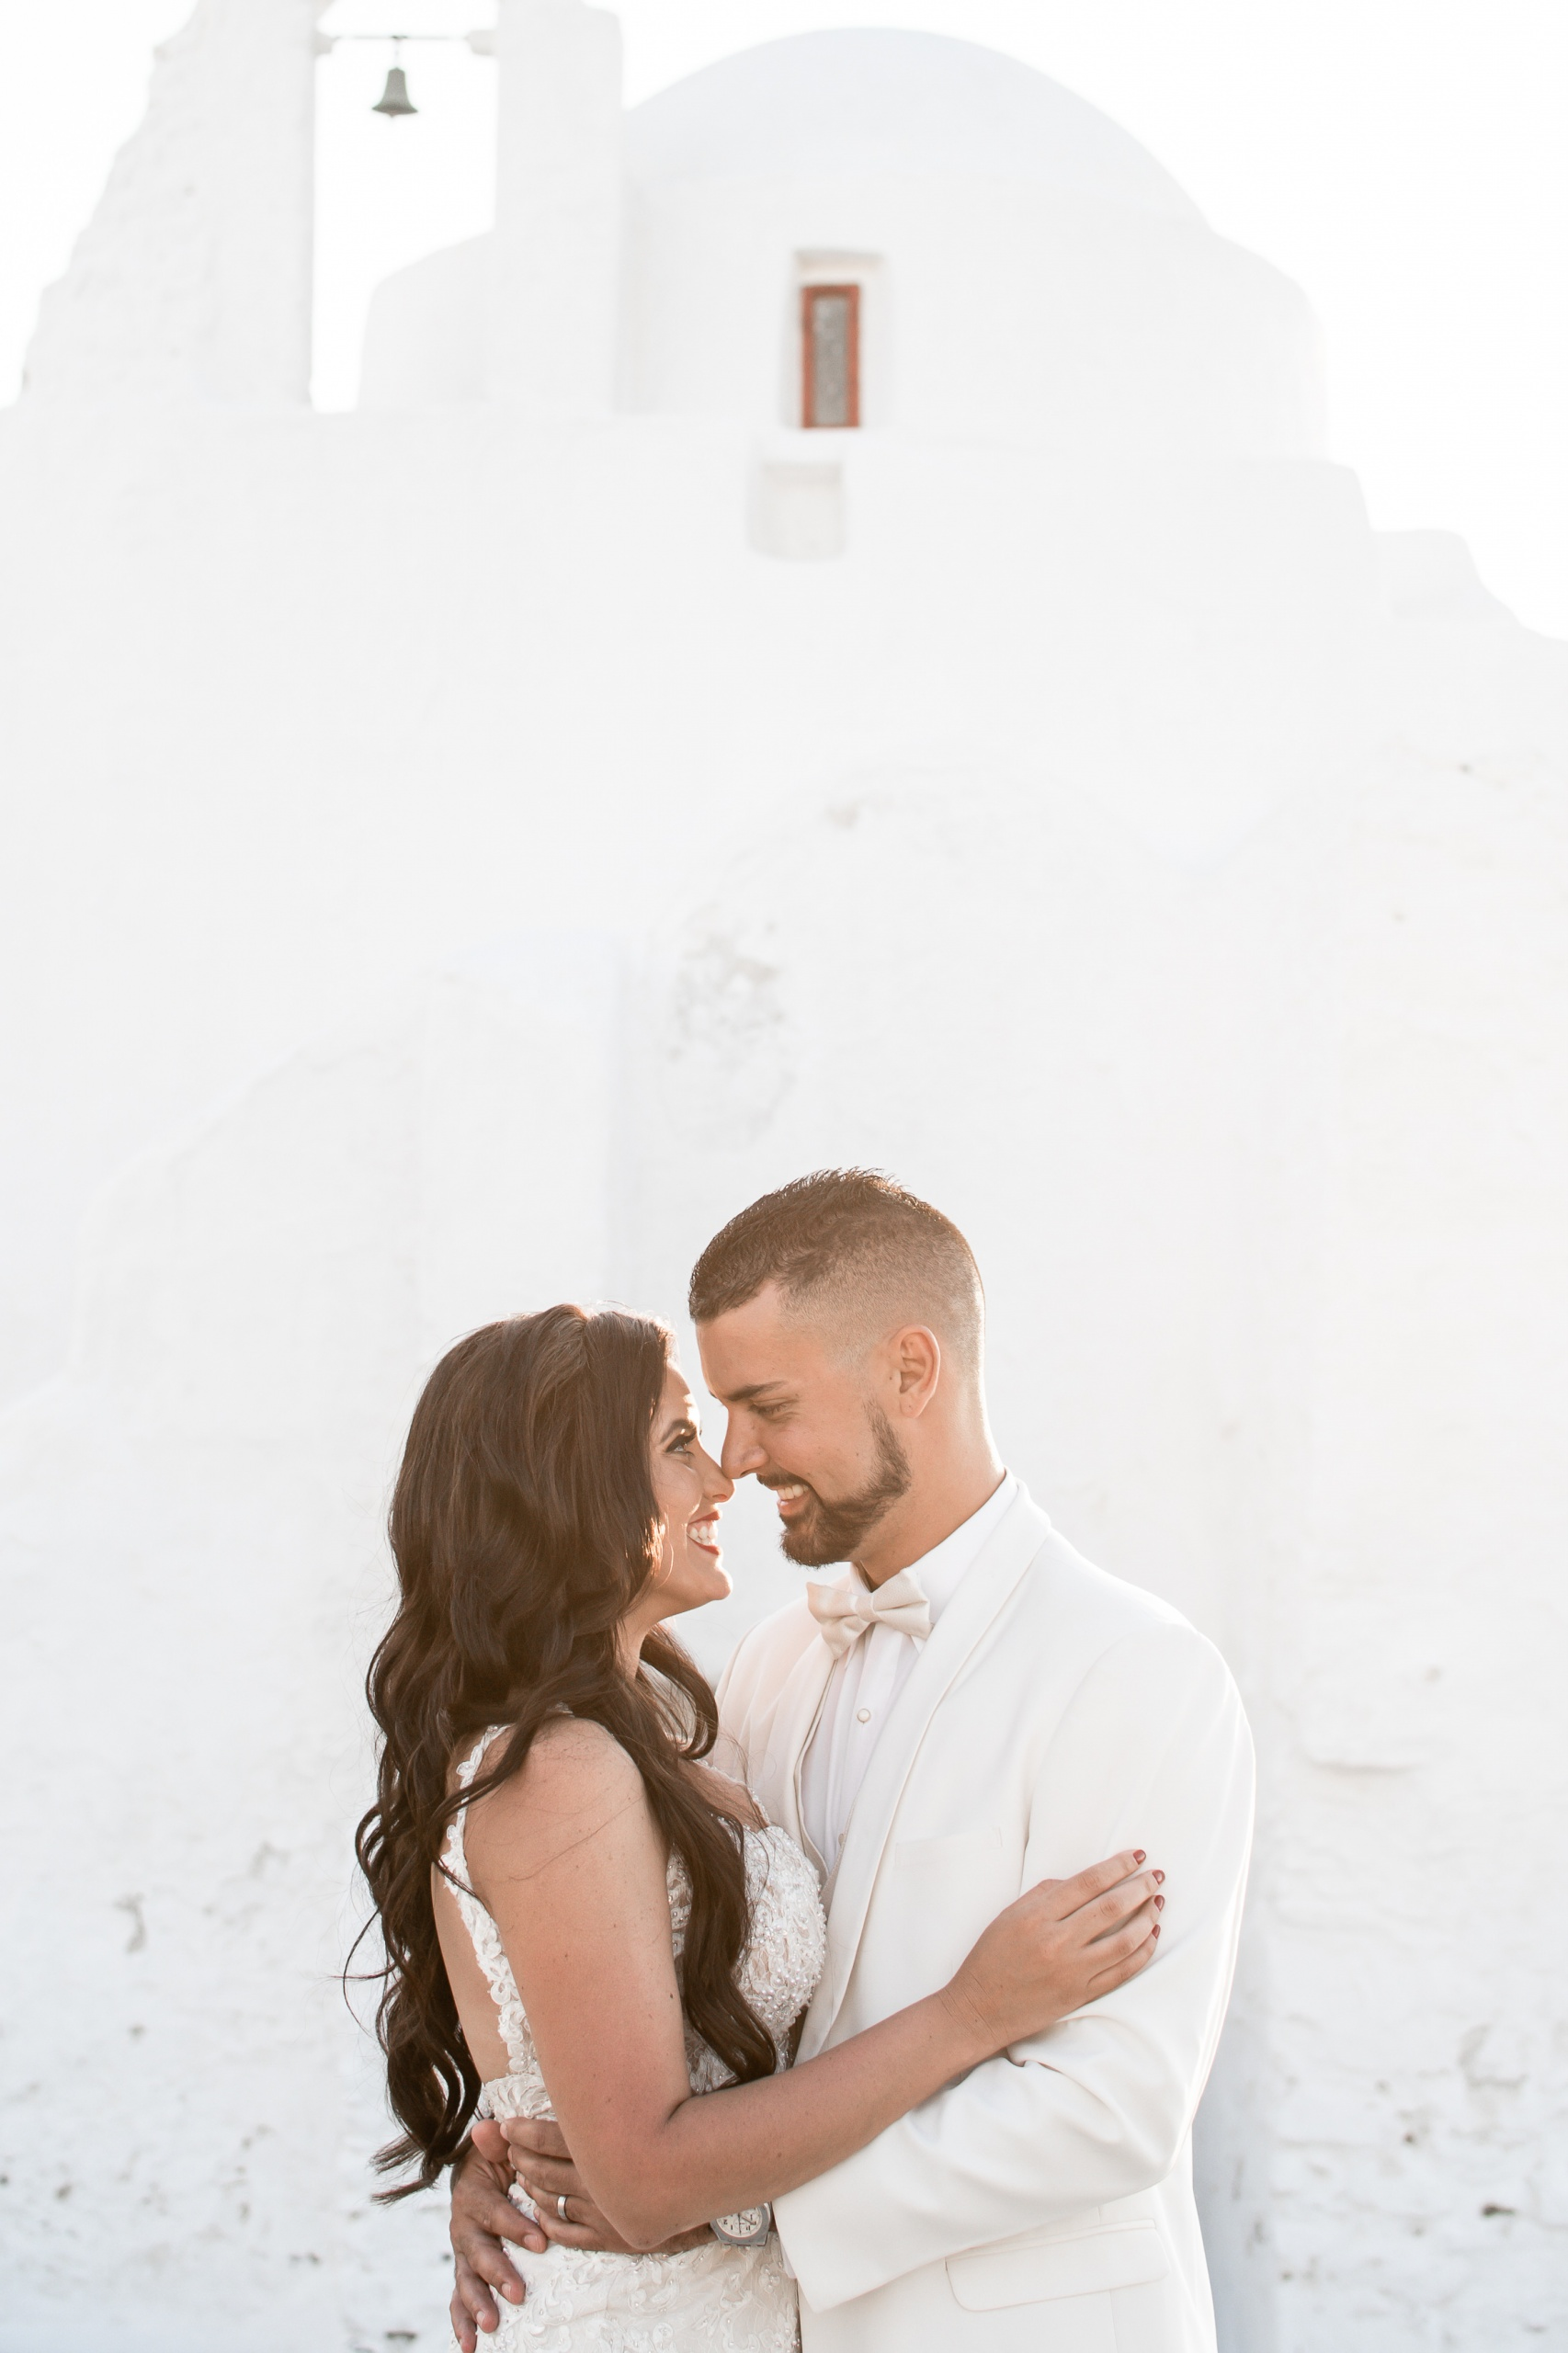 mykonos photographer wedding couple blogger #mykonosphotographer mykonosgreece #mykonosphotography portrait lifestyle #mykonosportrait blogger photographer mykonos chora windmills little venice #mykonoscouple chora mykonos prewedding mykonos afterwedding paraportiani photoshooting photography